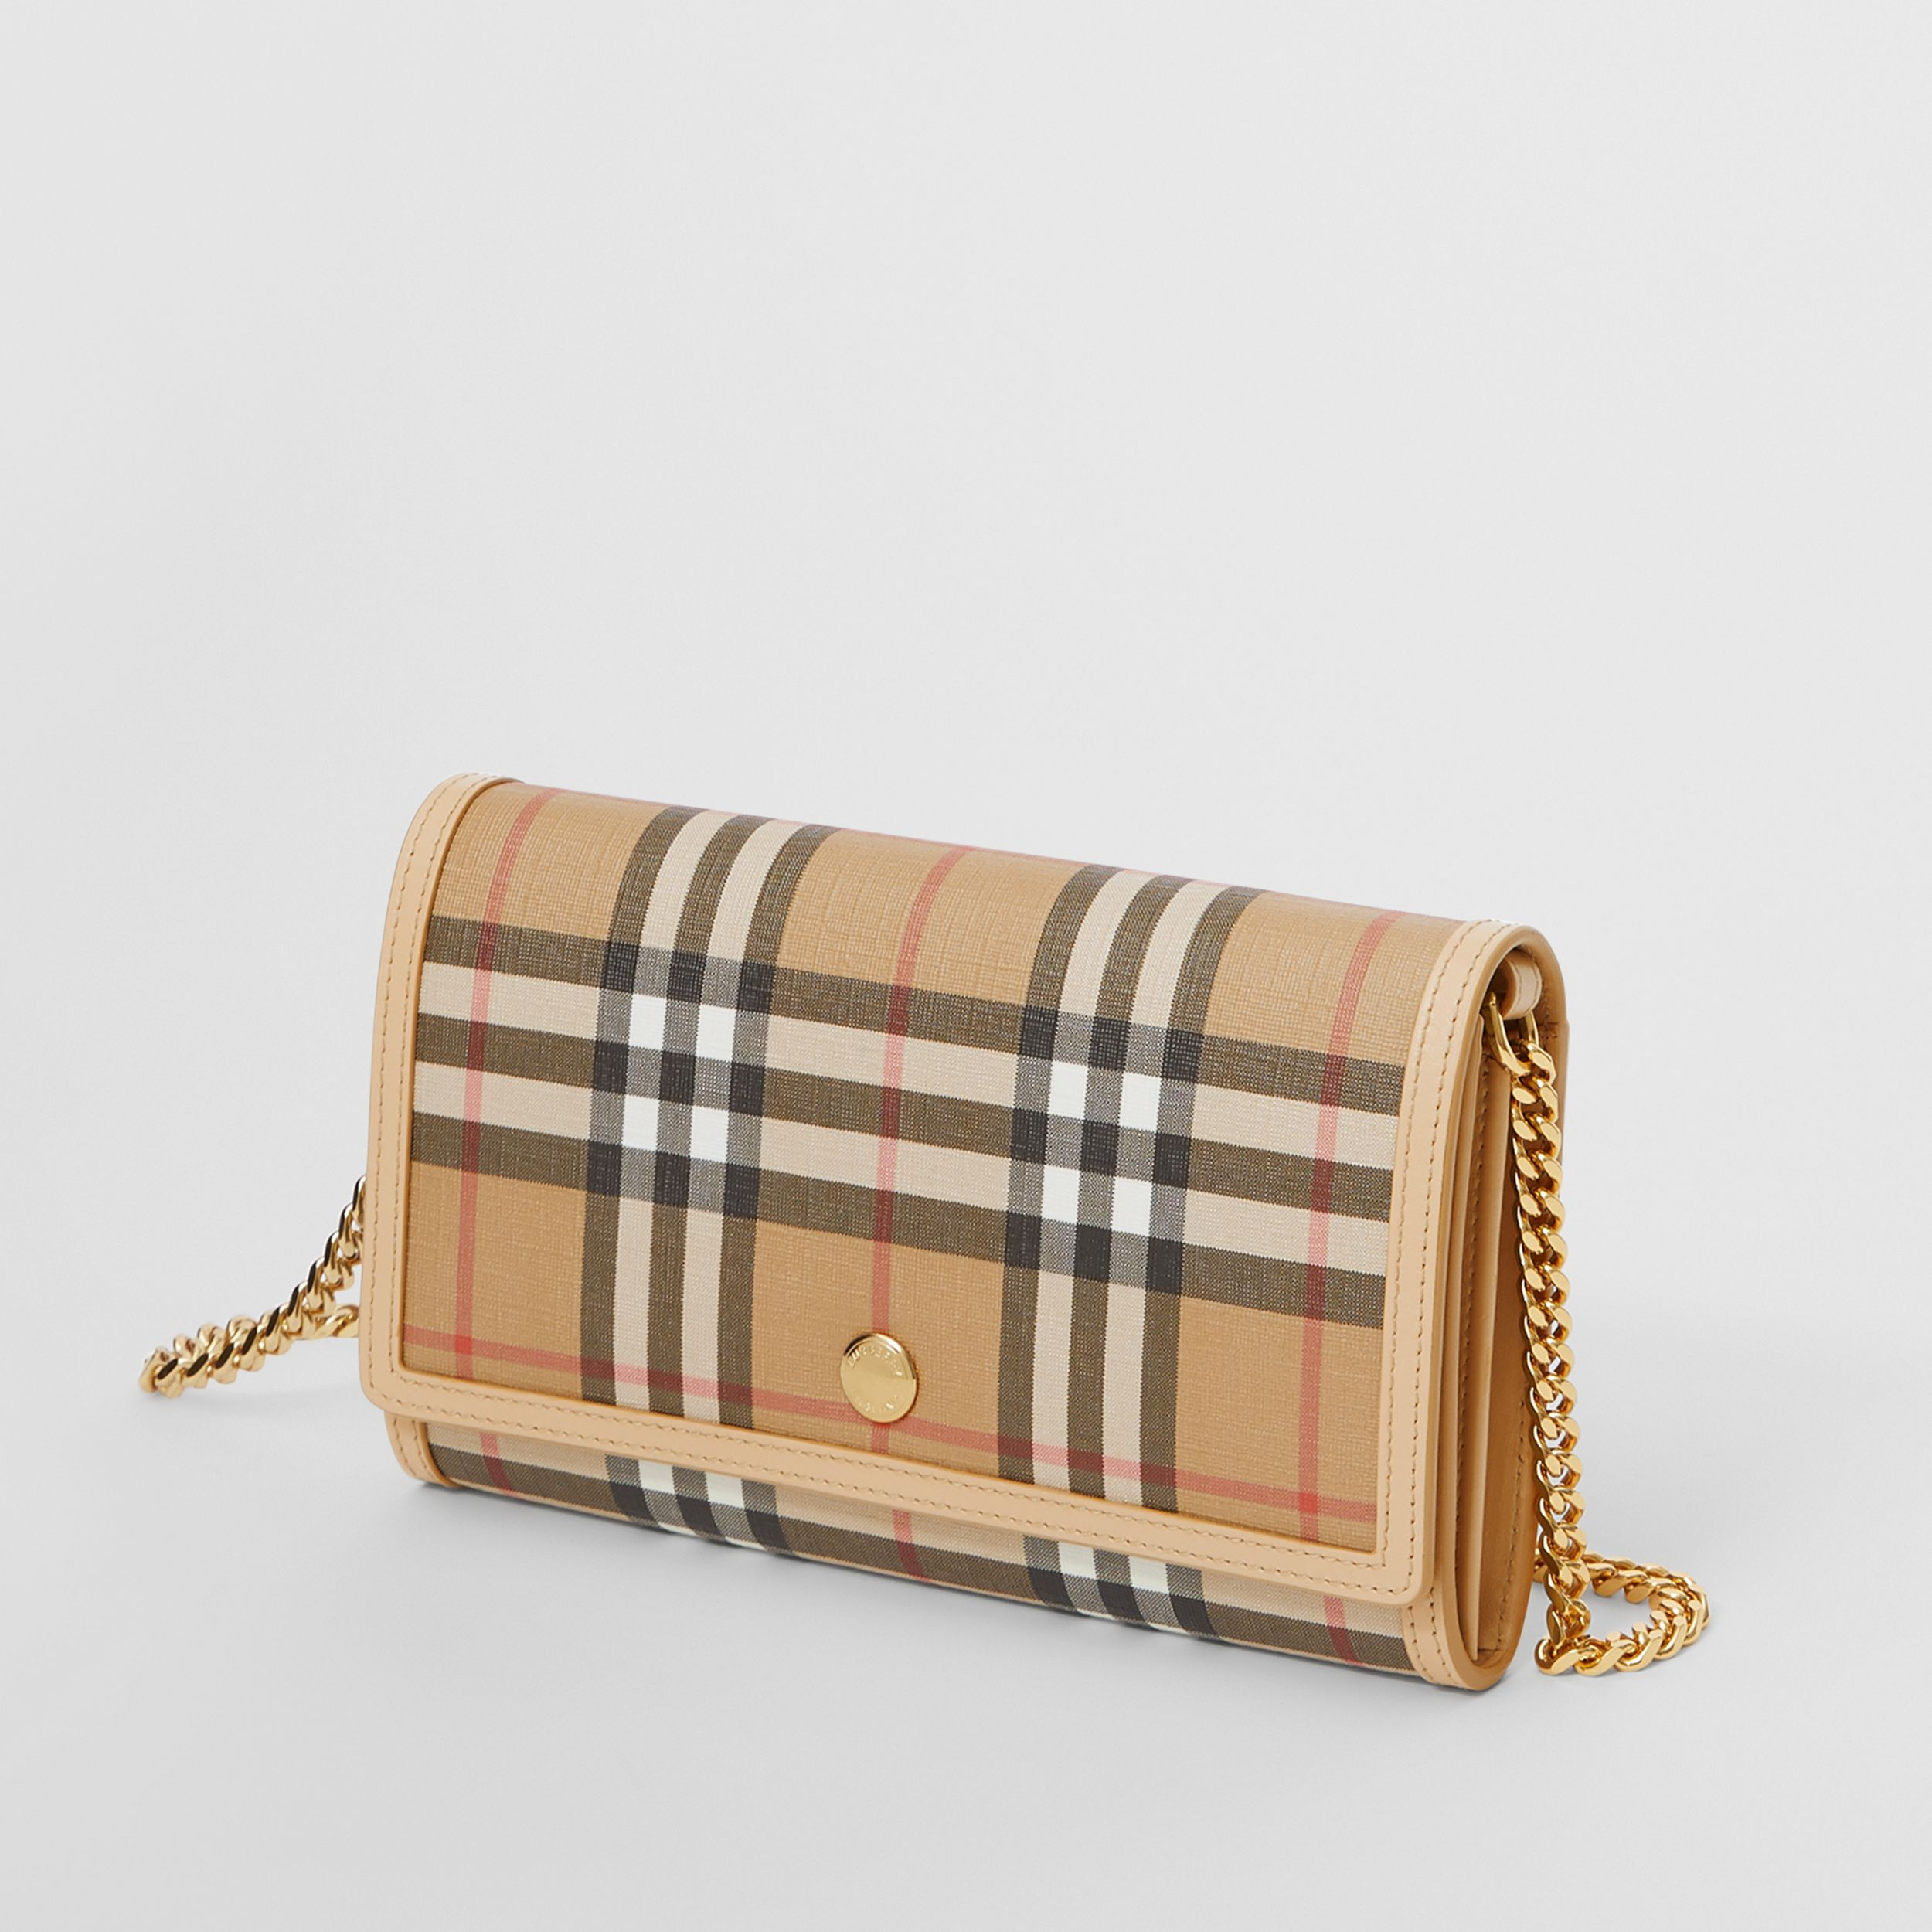 Vintage Check E-canvas Wallet with Detachable Strap in Beige - Women | Burberry United Kingdom - 4